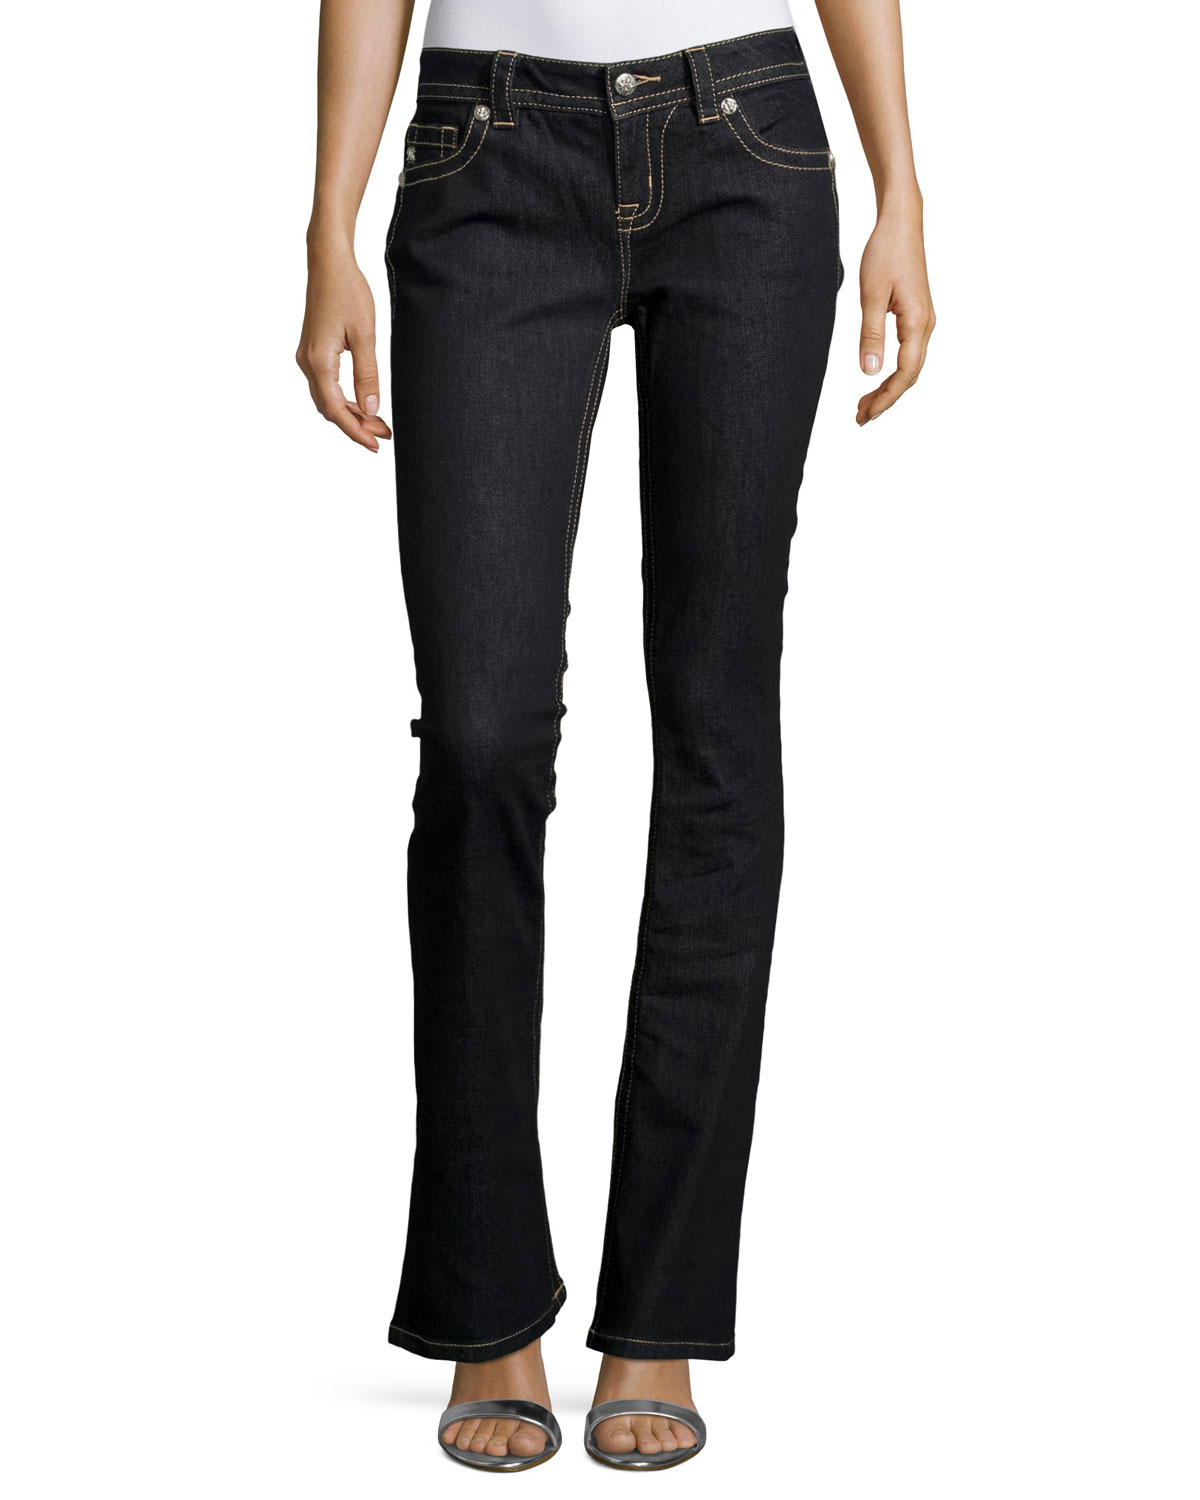 miss me mid rise boot cut jeans in black lyst. Black Bedroom Furniture Sets. Home Design Ideas